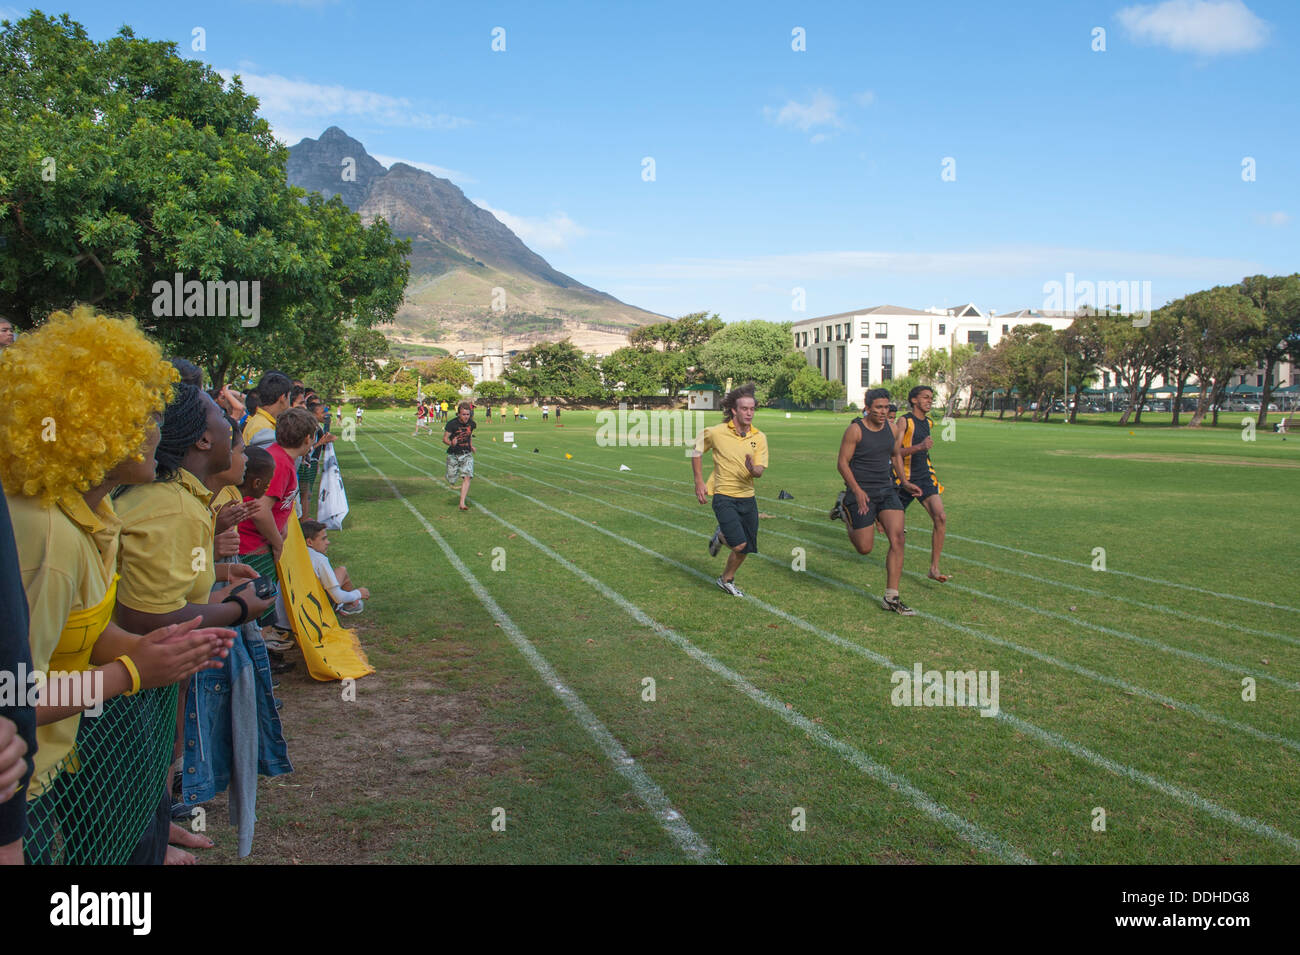 Athletic children taking part in a running competition at St. George's School, Cape Town, South Africa - Stock Image